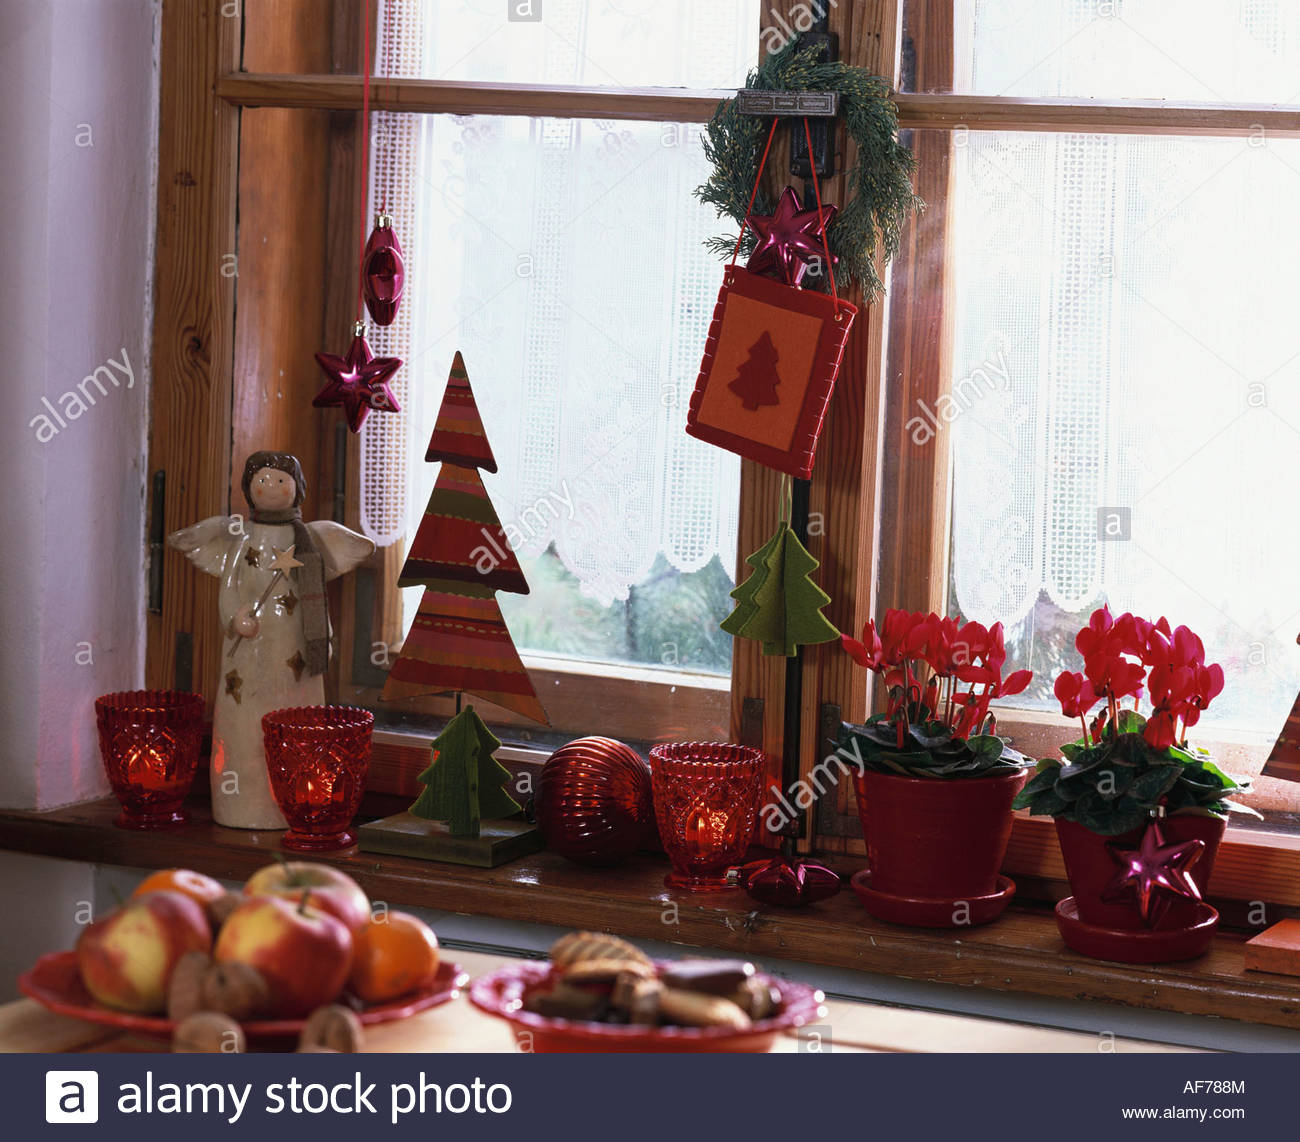 Cyclamen On Window Sill With Christmas Decorations Stock